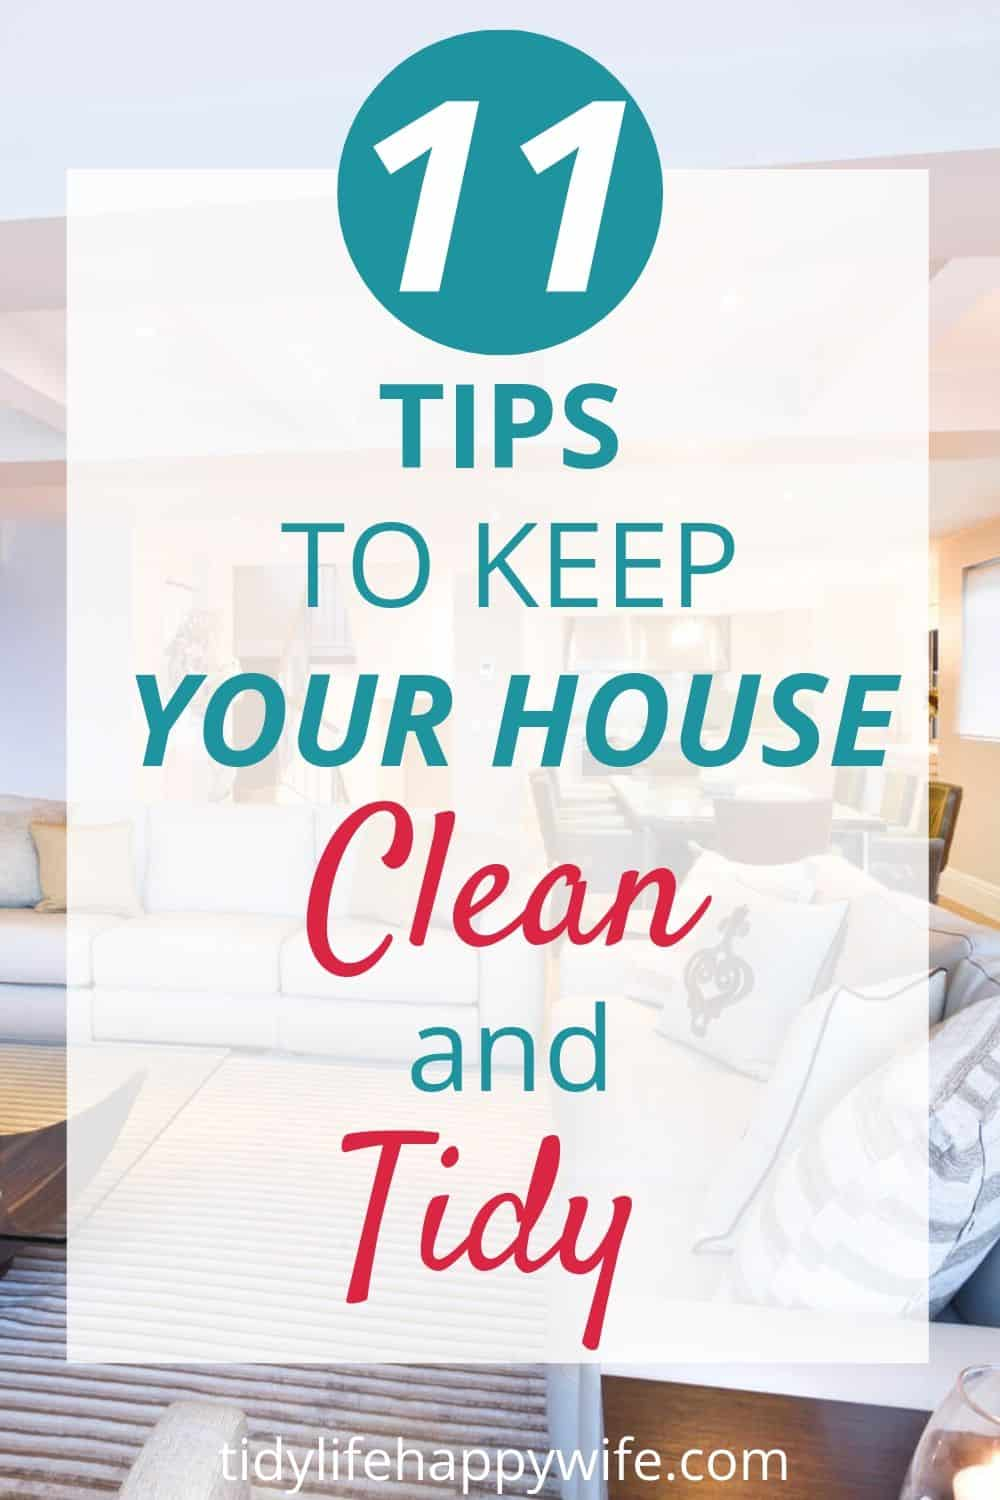 11 tips to keep your house clean and tidy written over a clean living room